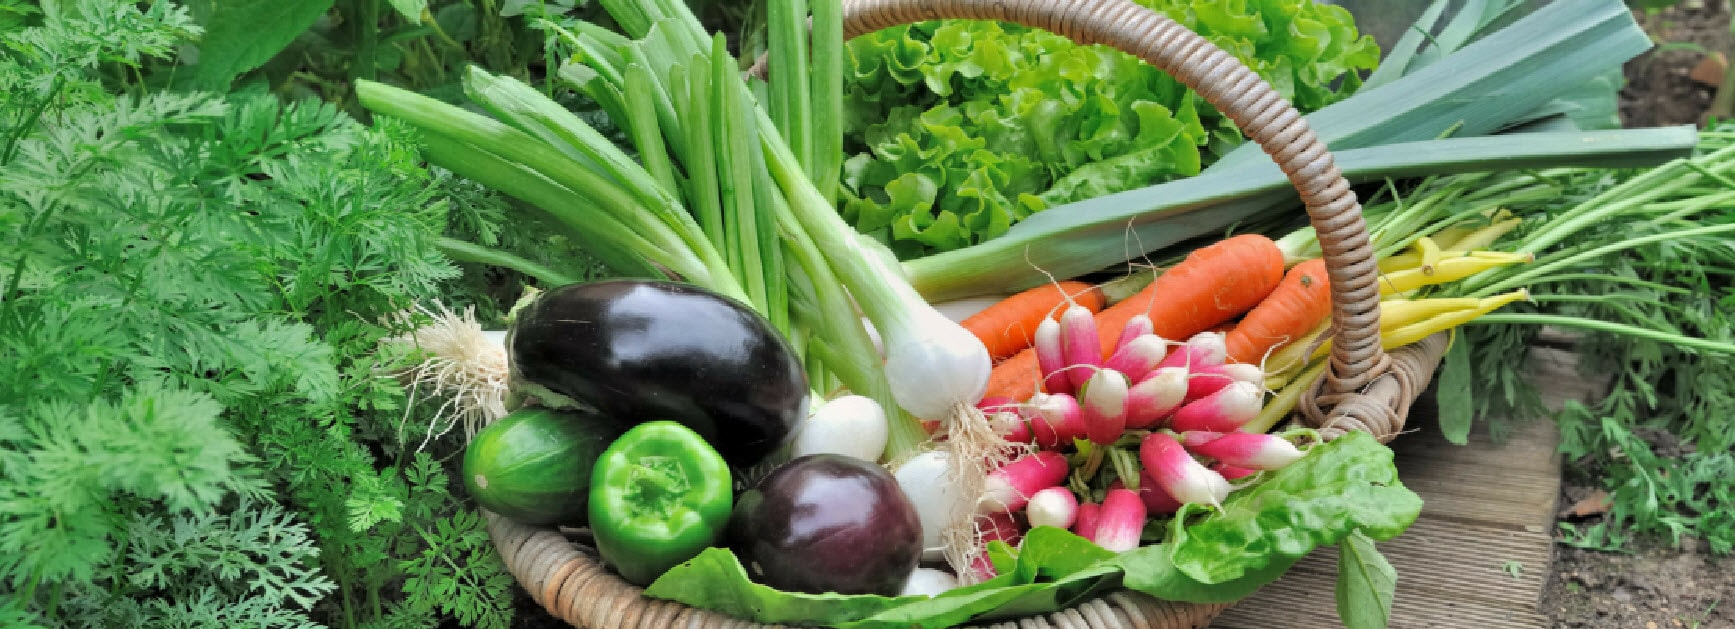 basketveggies555x201-min.jpg